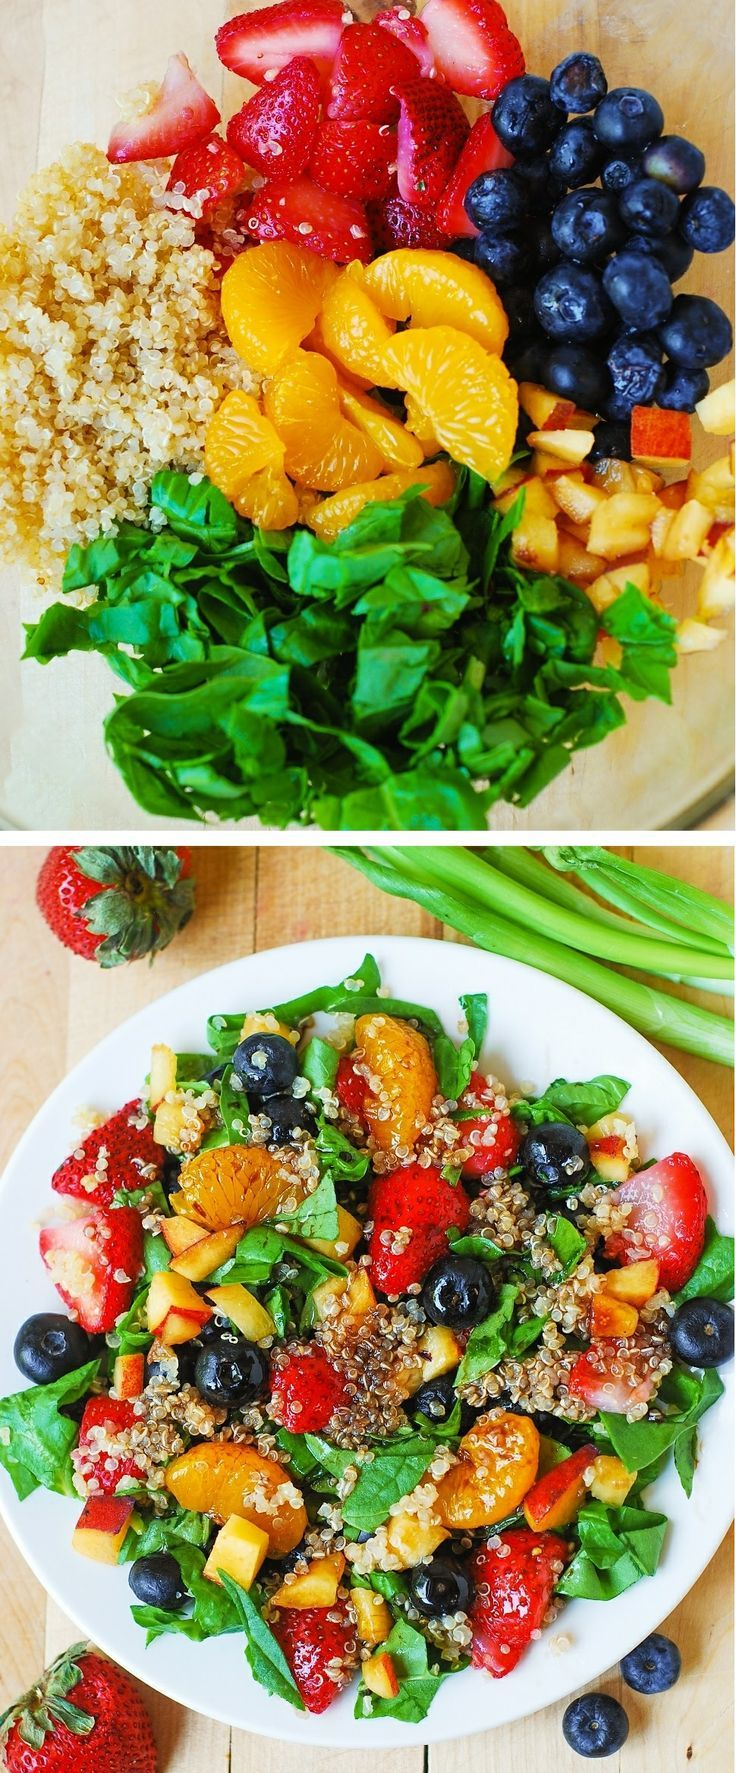 Vegan and gluten free Quinoa salad with spinach, strawberries, blueberries, and peaches, in a homemade Balsamic vinaigrette dressing. YUM!